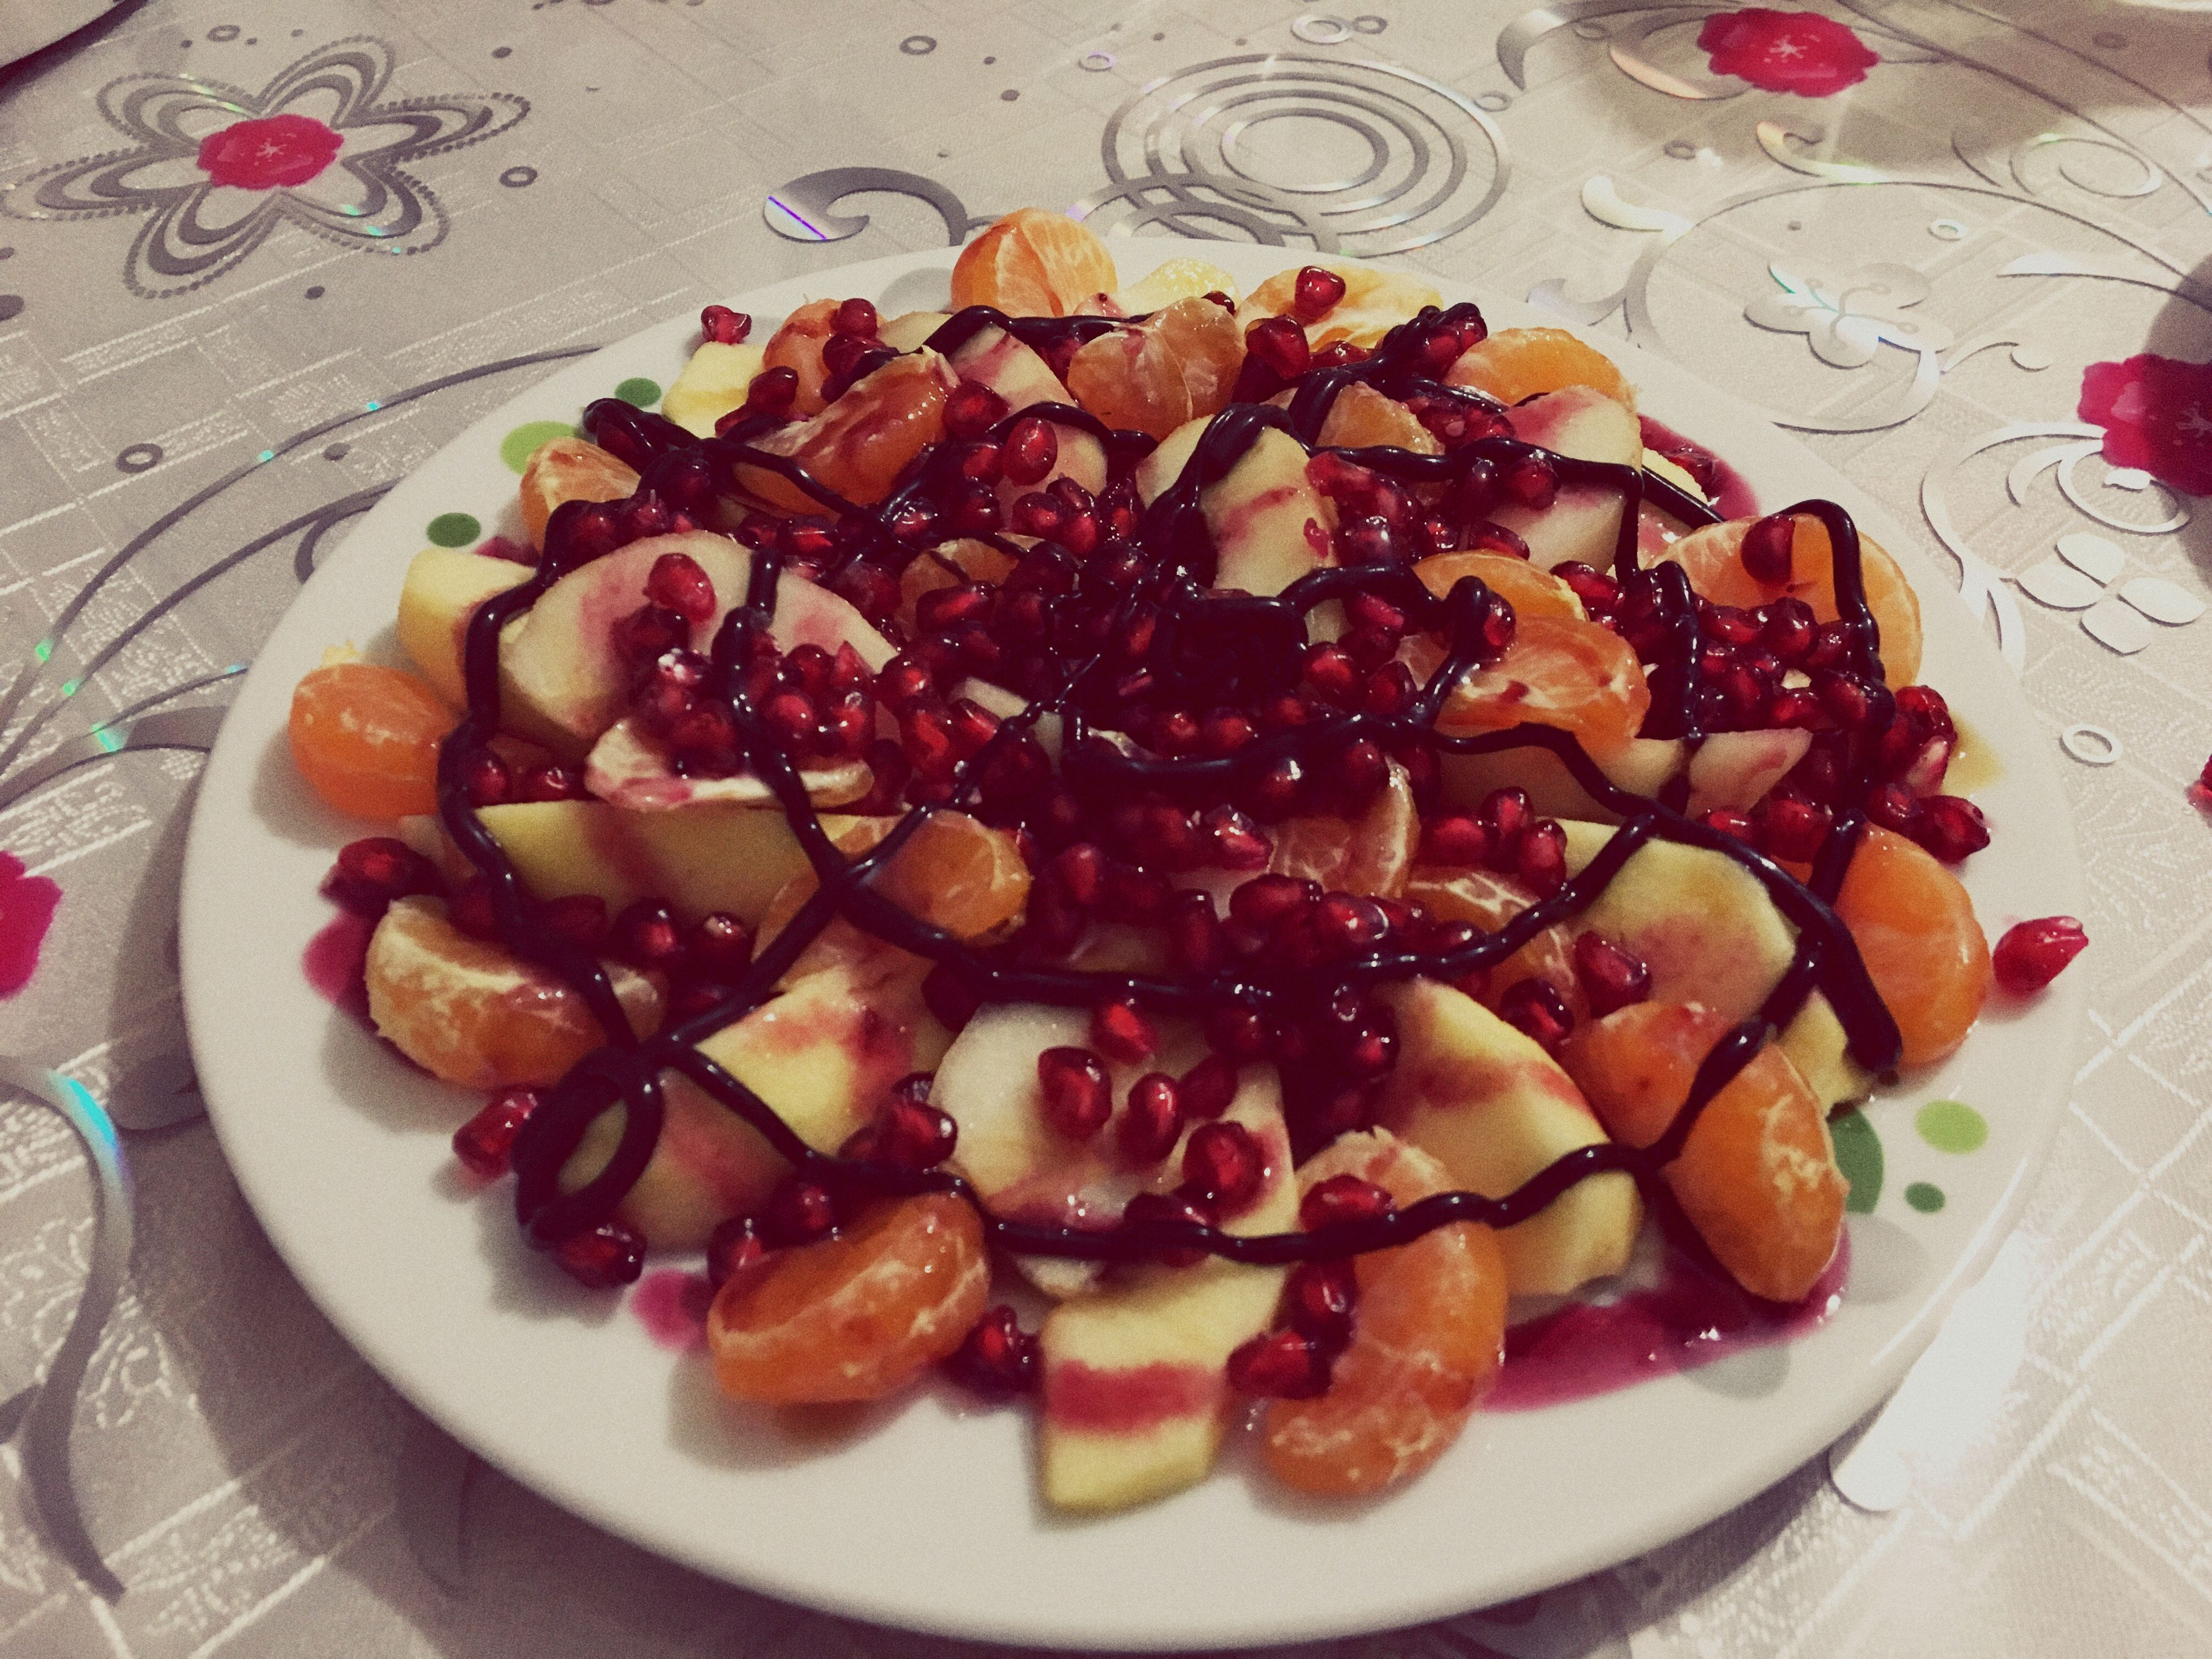 food, food and drink, plate, freshness, sweet food, ready-to-eat, temptation, fruit, indulgence, dessert, serving size, indoors, close-up, no people, homemade, tart - dessert, sweet pie, day